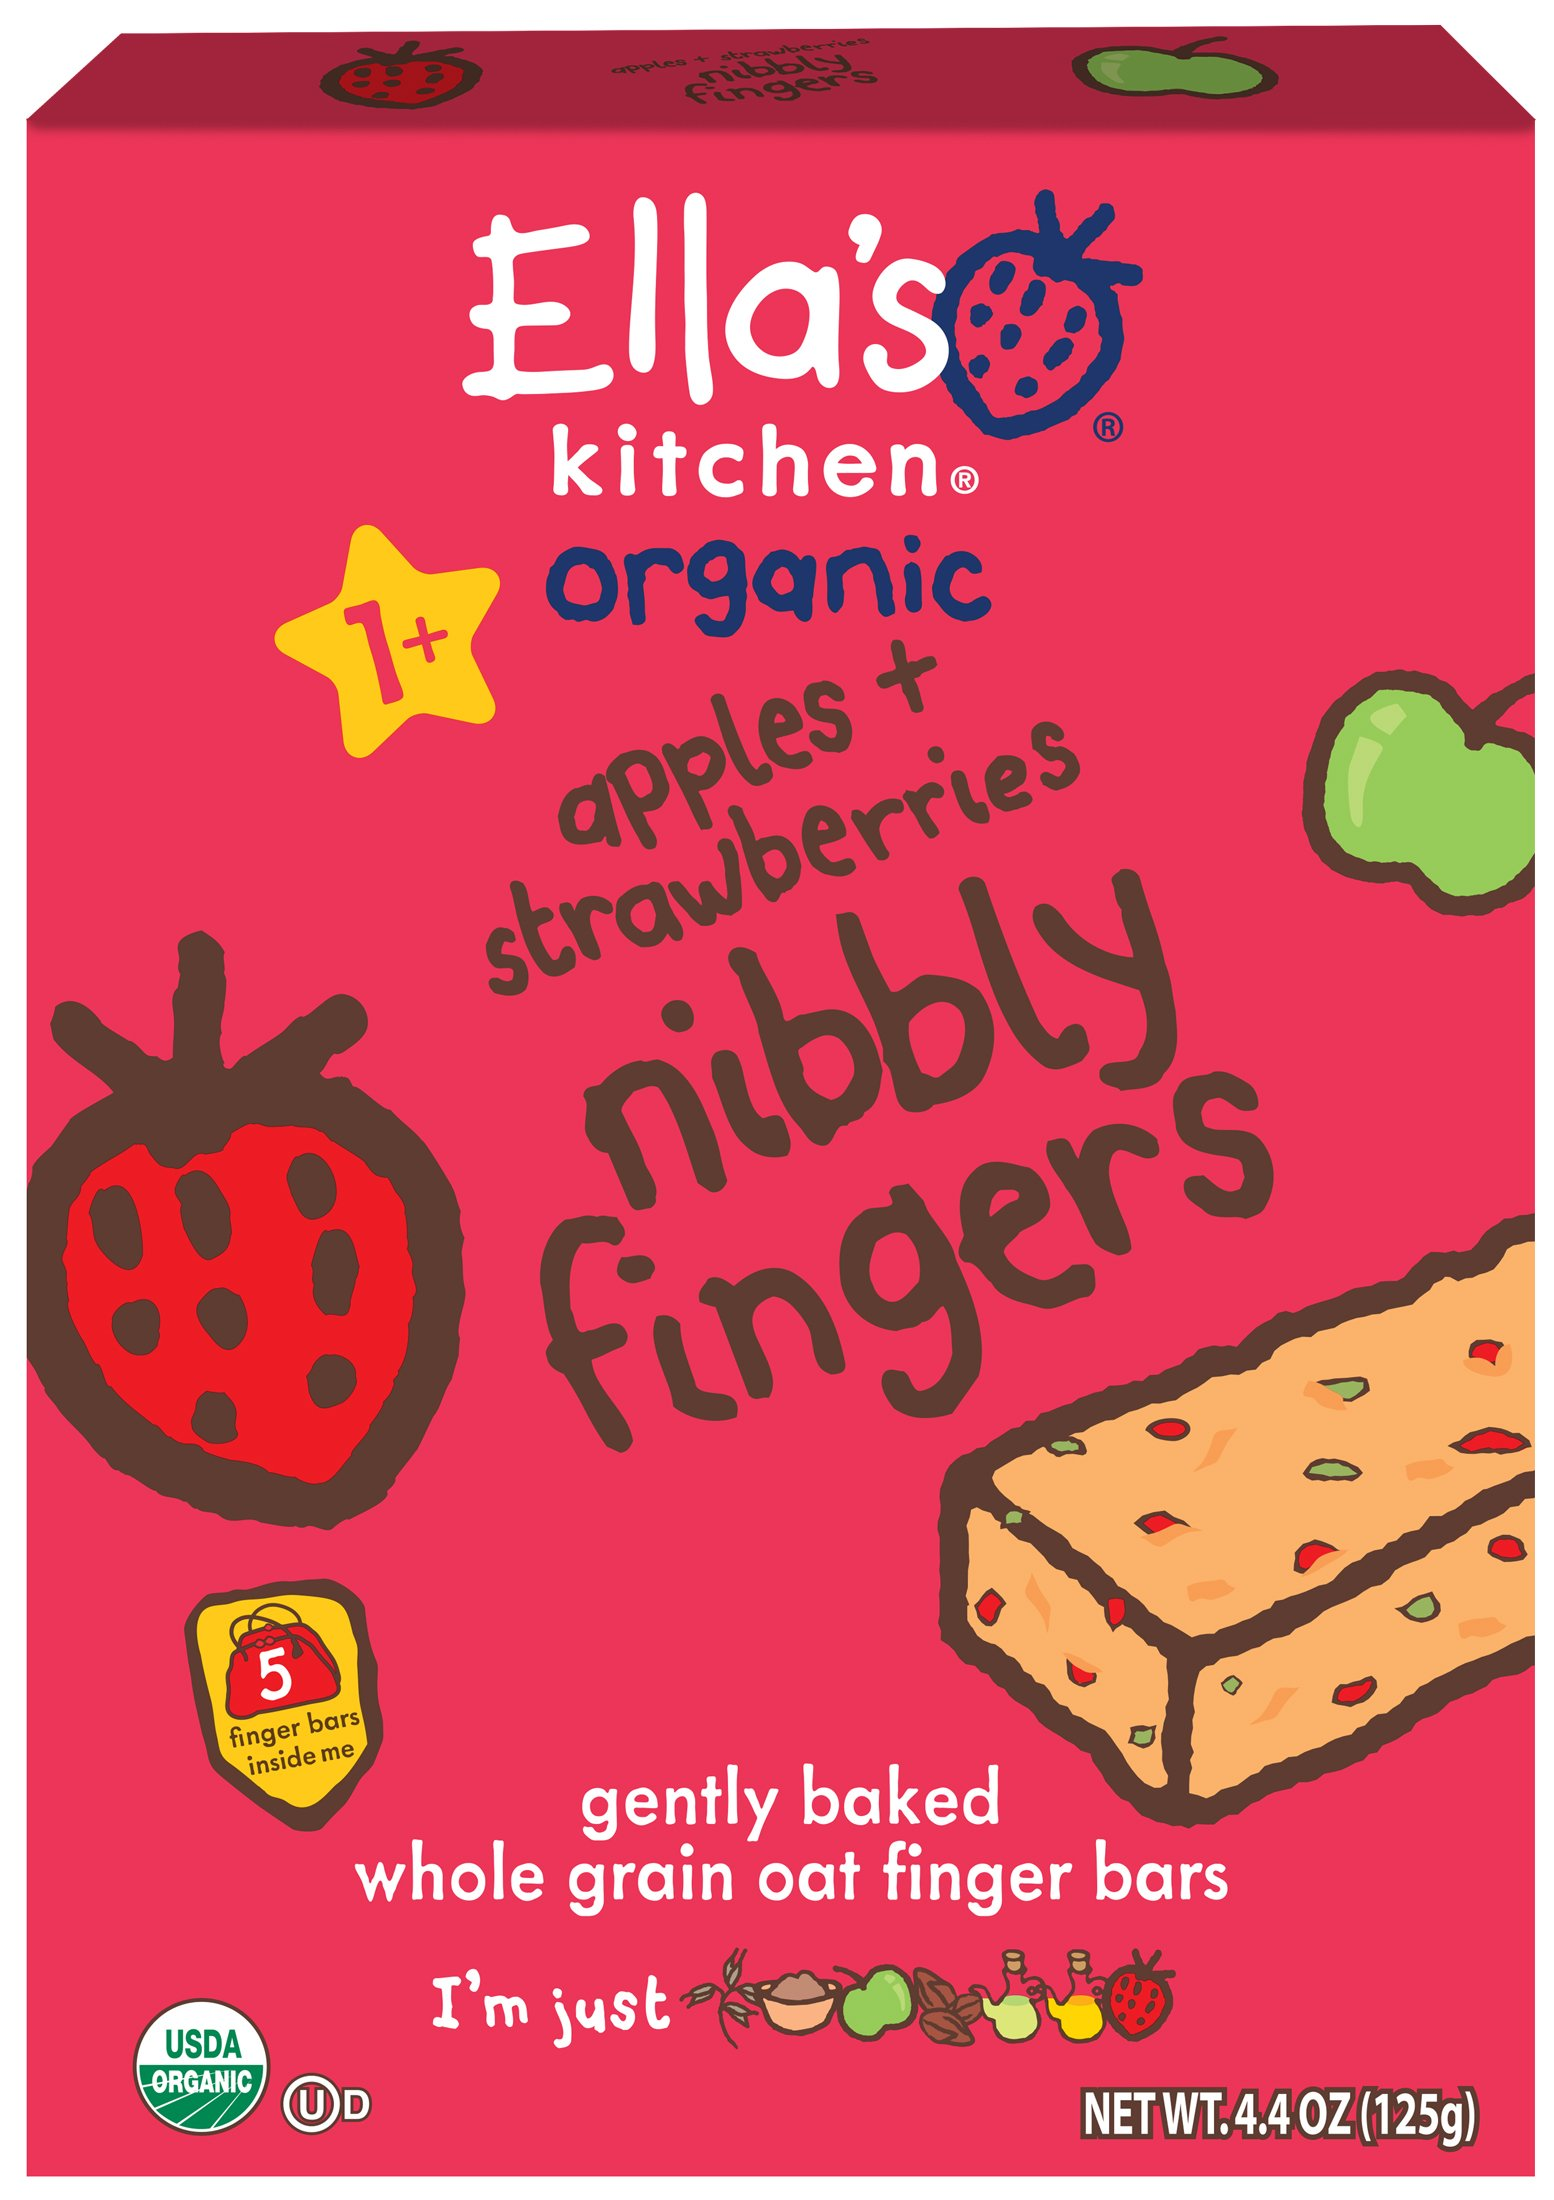 Ella's Kitchen Organic 1+ Year Nibbly Fingers, Apples and Strawberries, 5 Count (Pack of 12) by Ella's Ktichen